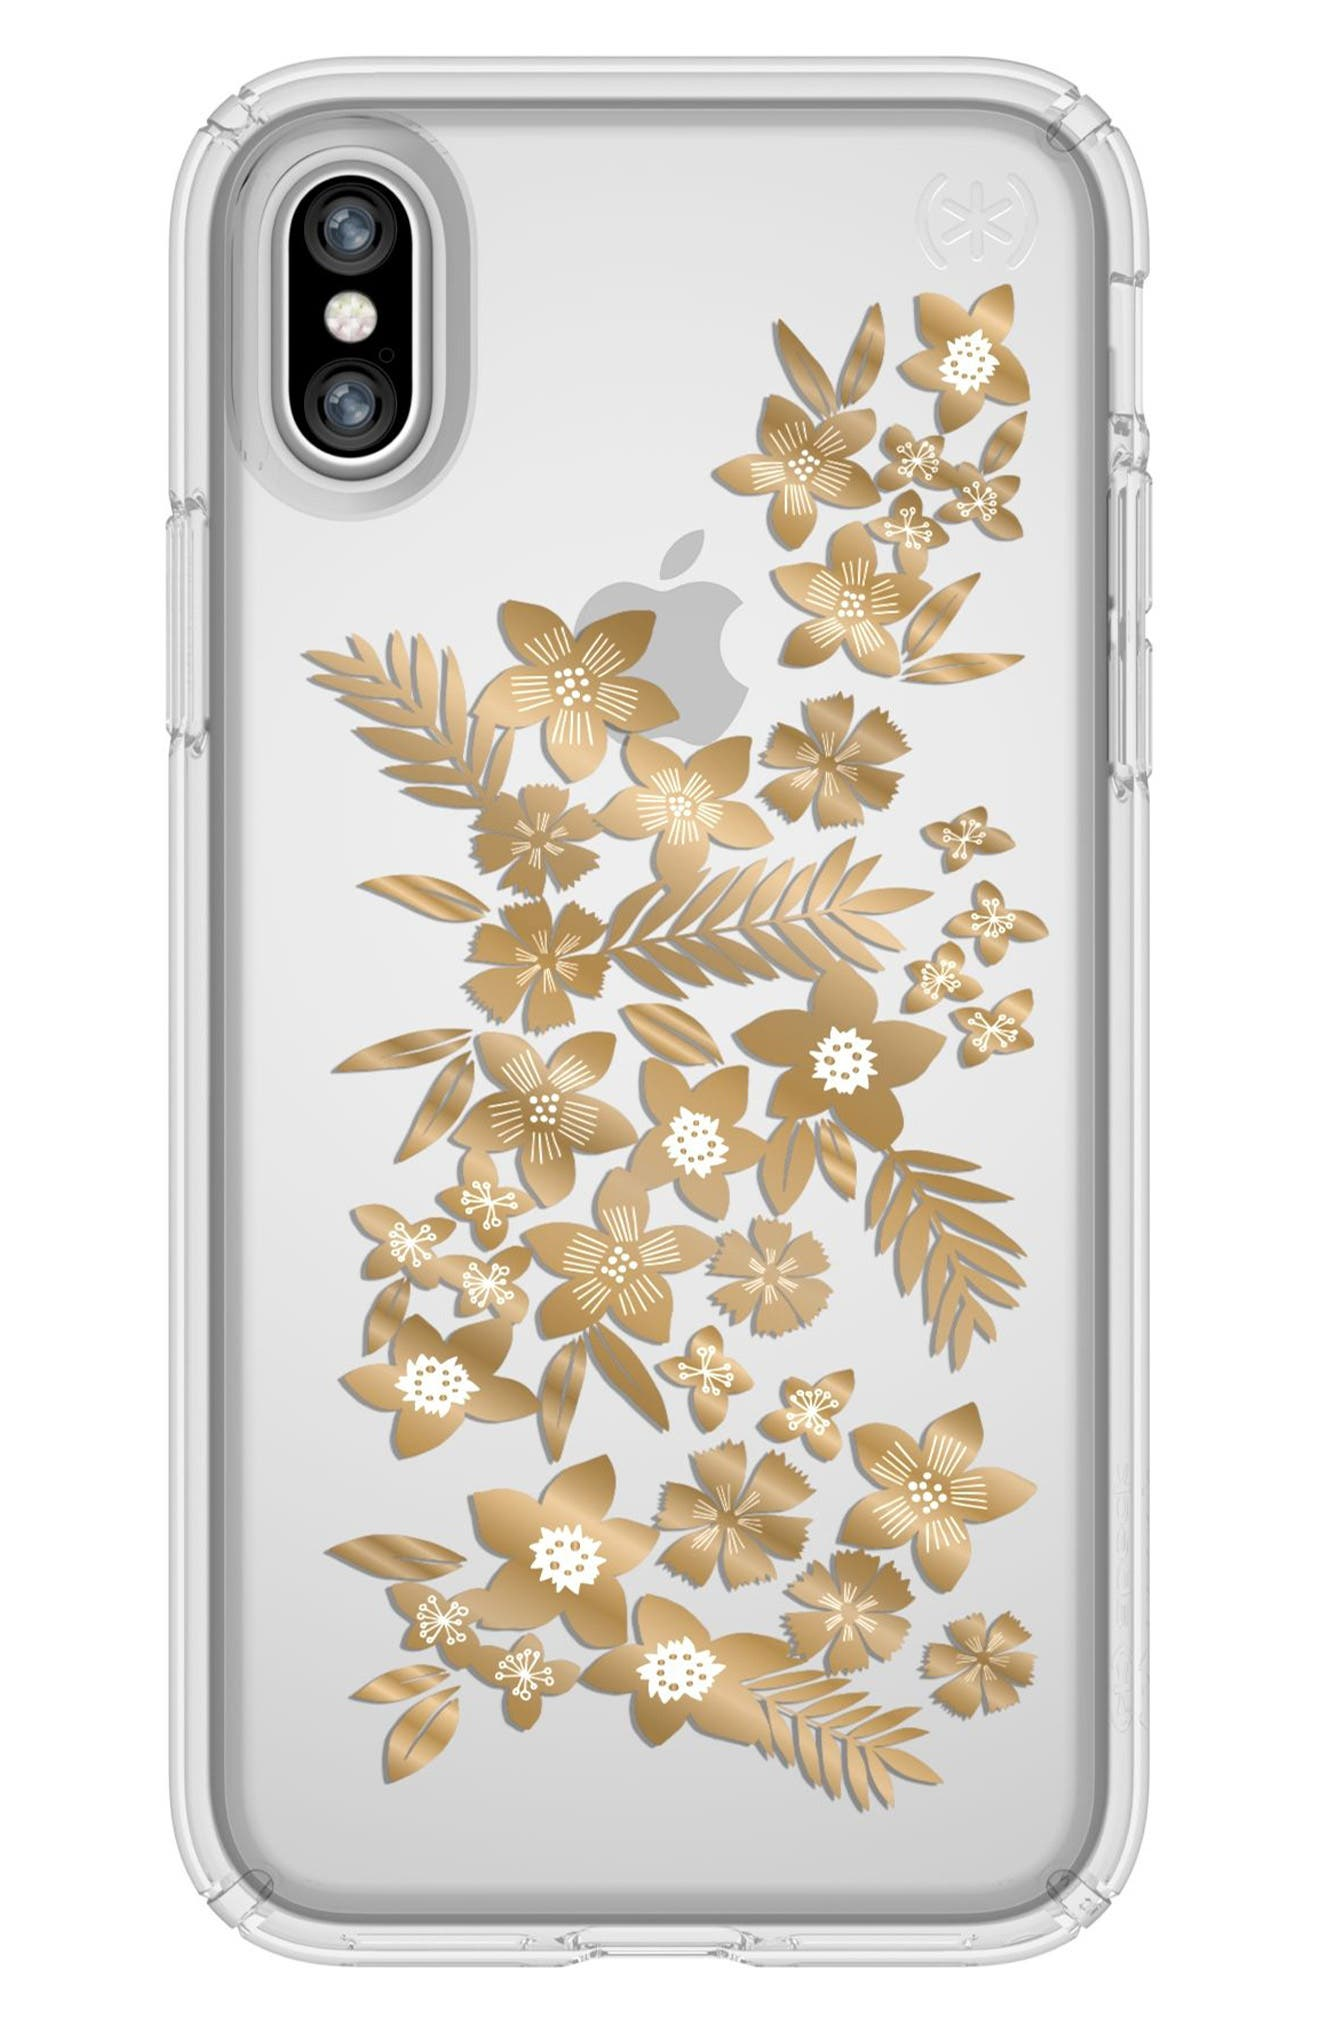 Main Image - Speck Shimmer Metallic Floral Transparent iPhone X Case